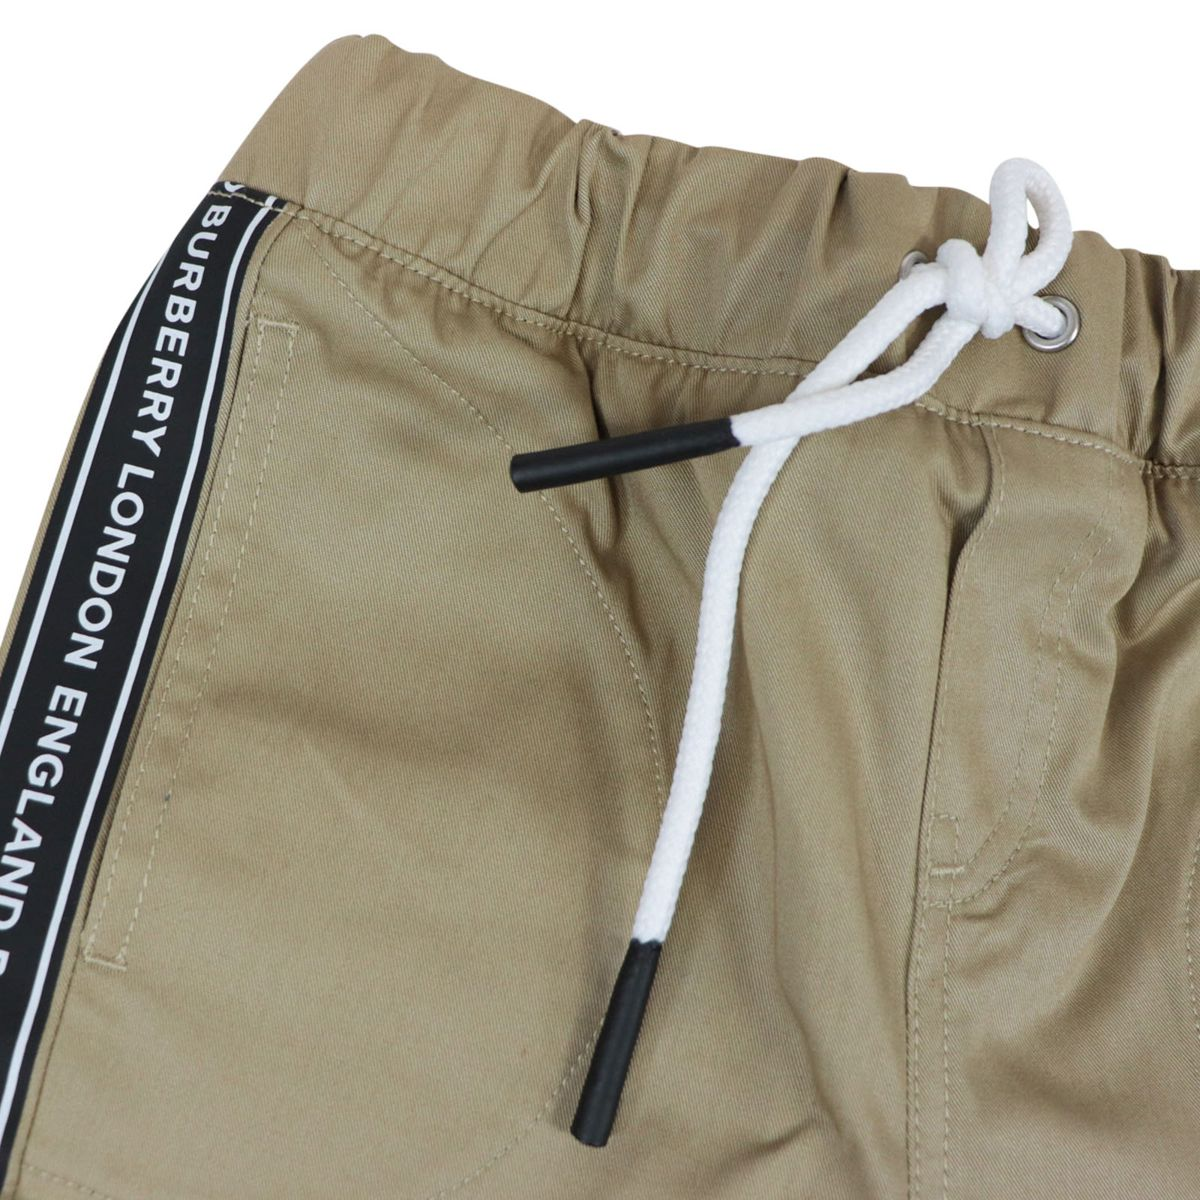 Cotton trousers with logoed side band Honey Burberry